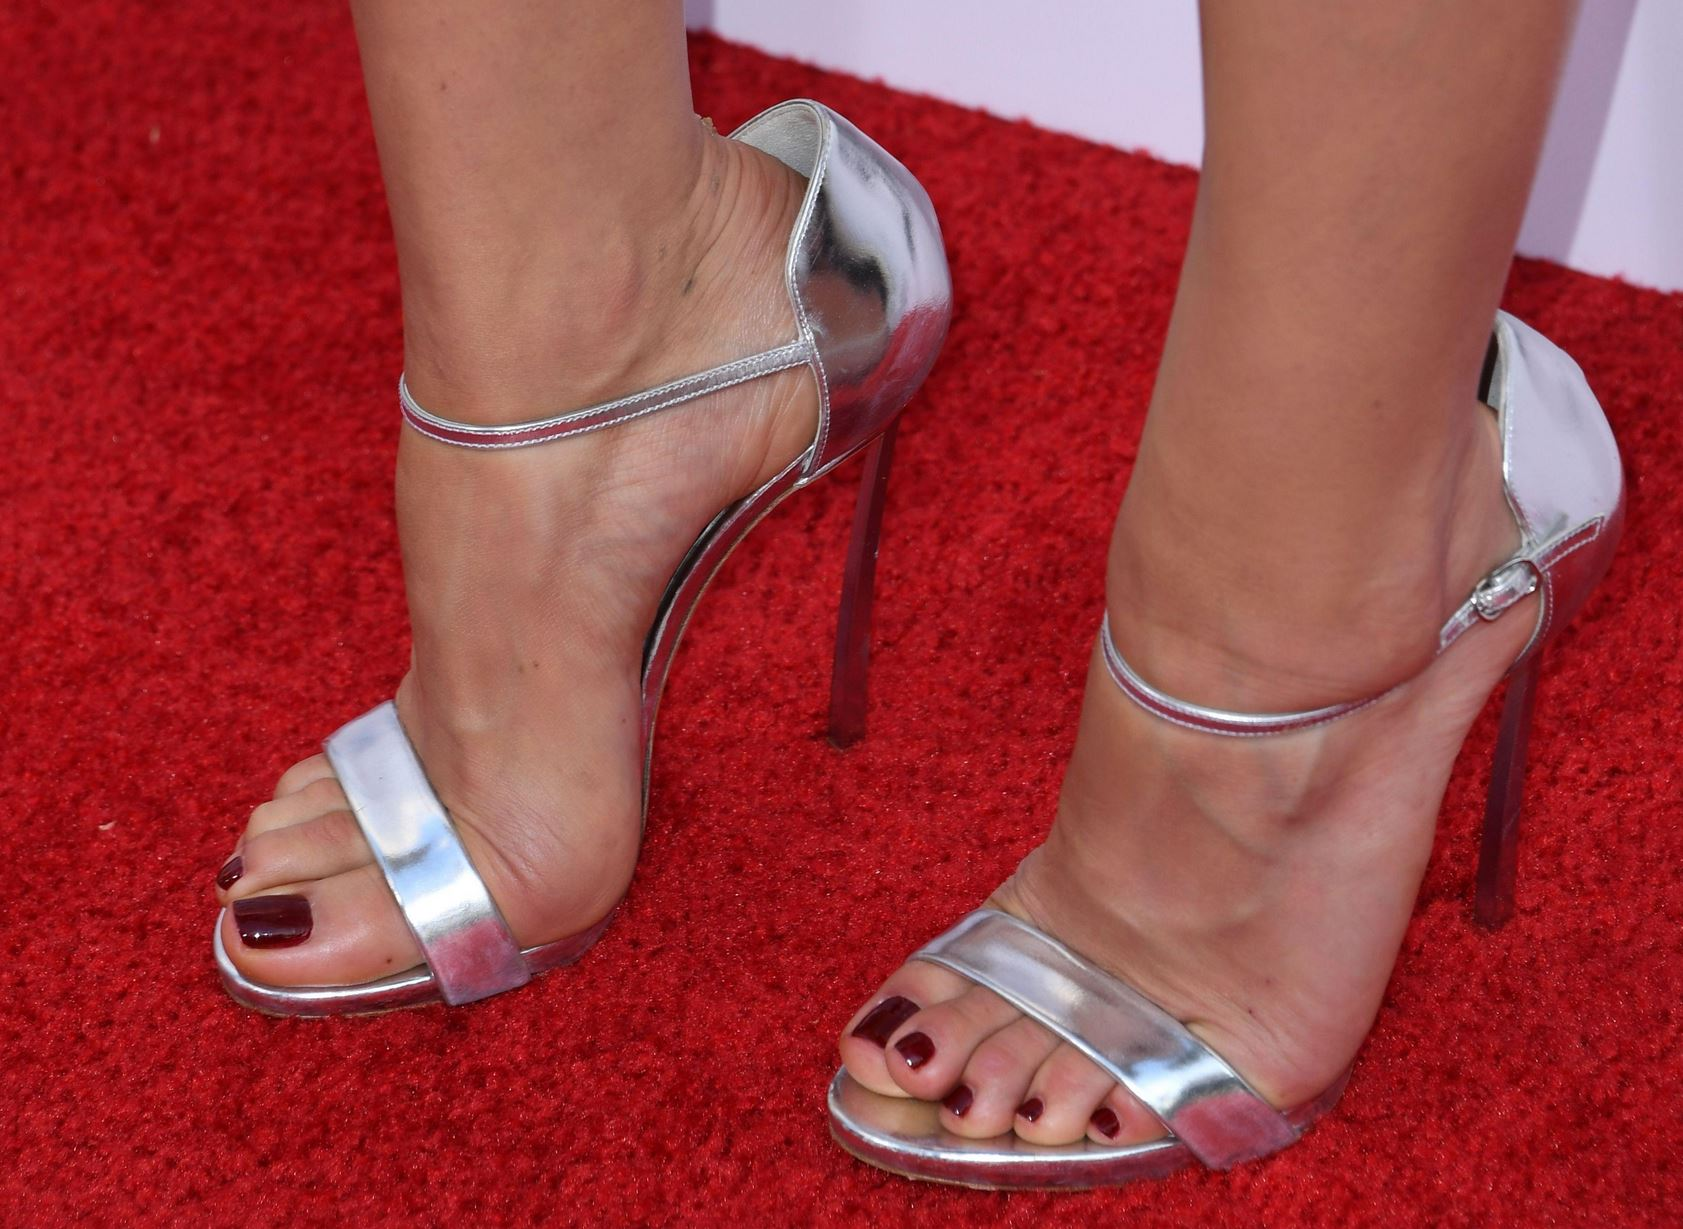 Feet Aubrey Plaza naked (39 foto and video), Topless, Leaked, Feet, lingerie 2015